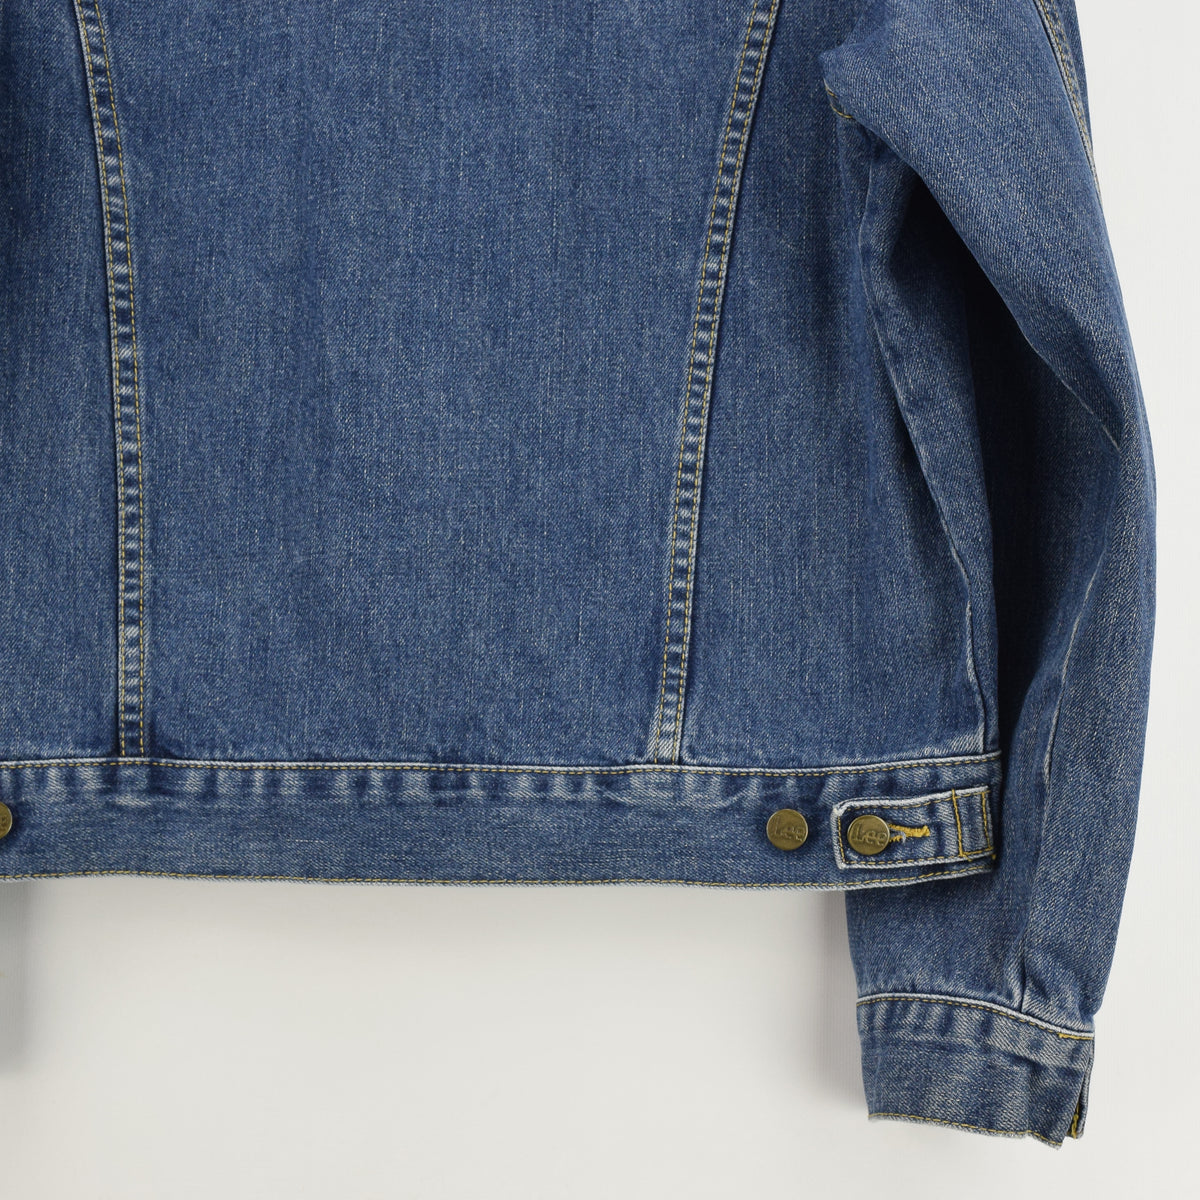 Vintage Lee Washed Blue Denim Trucker Style Basic Jacket L back hem